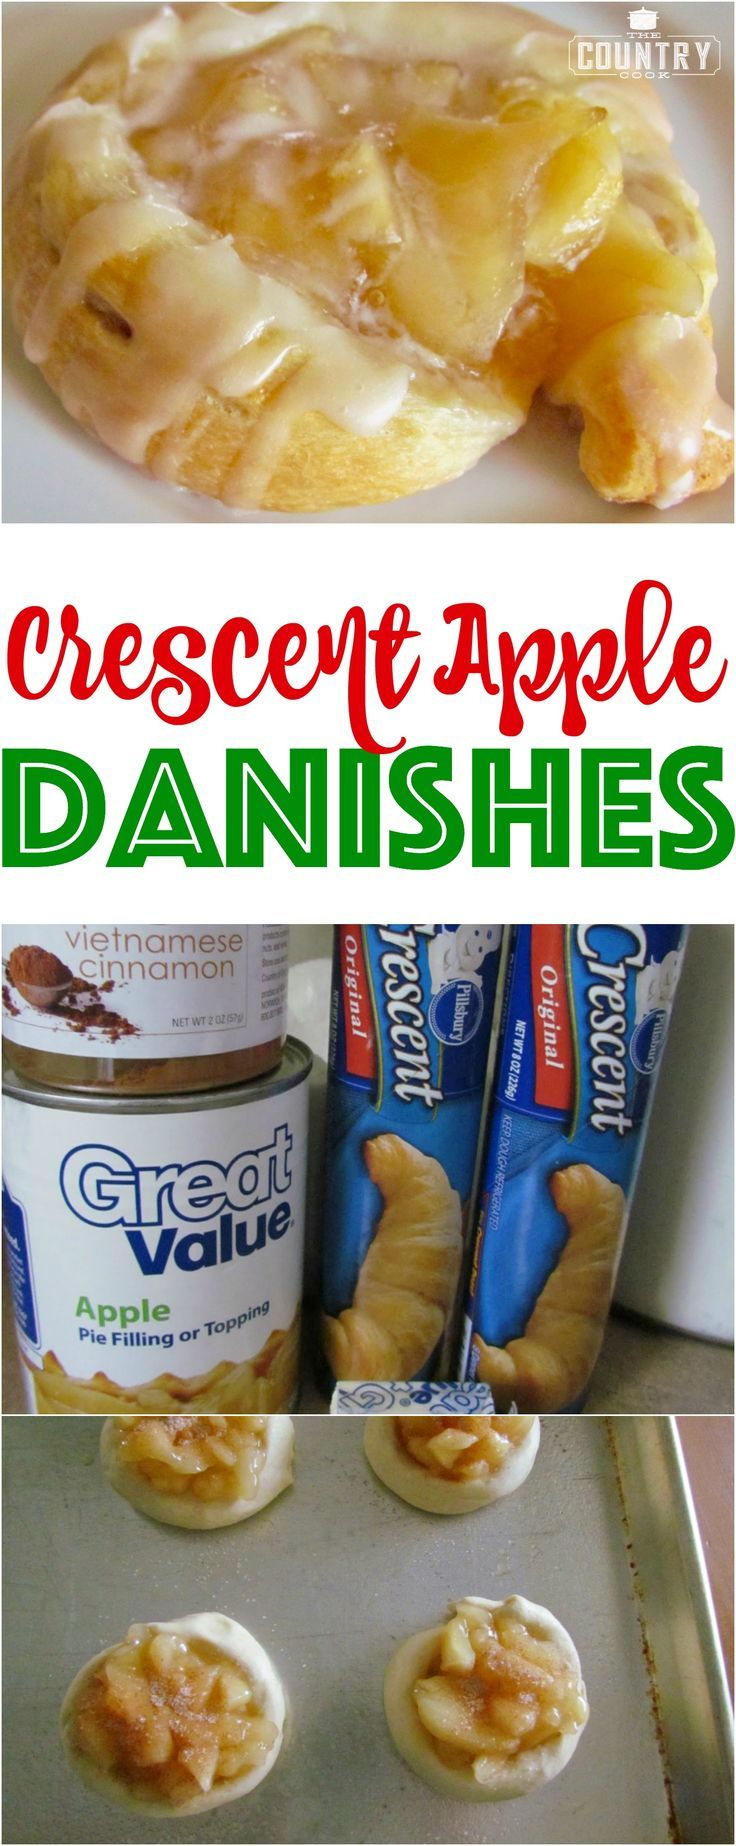 Crescent Apple Danishes recipe from The Country Cook